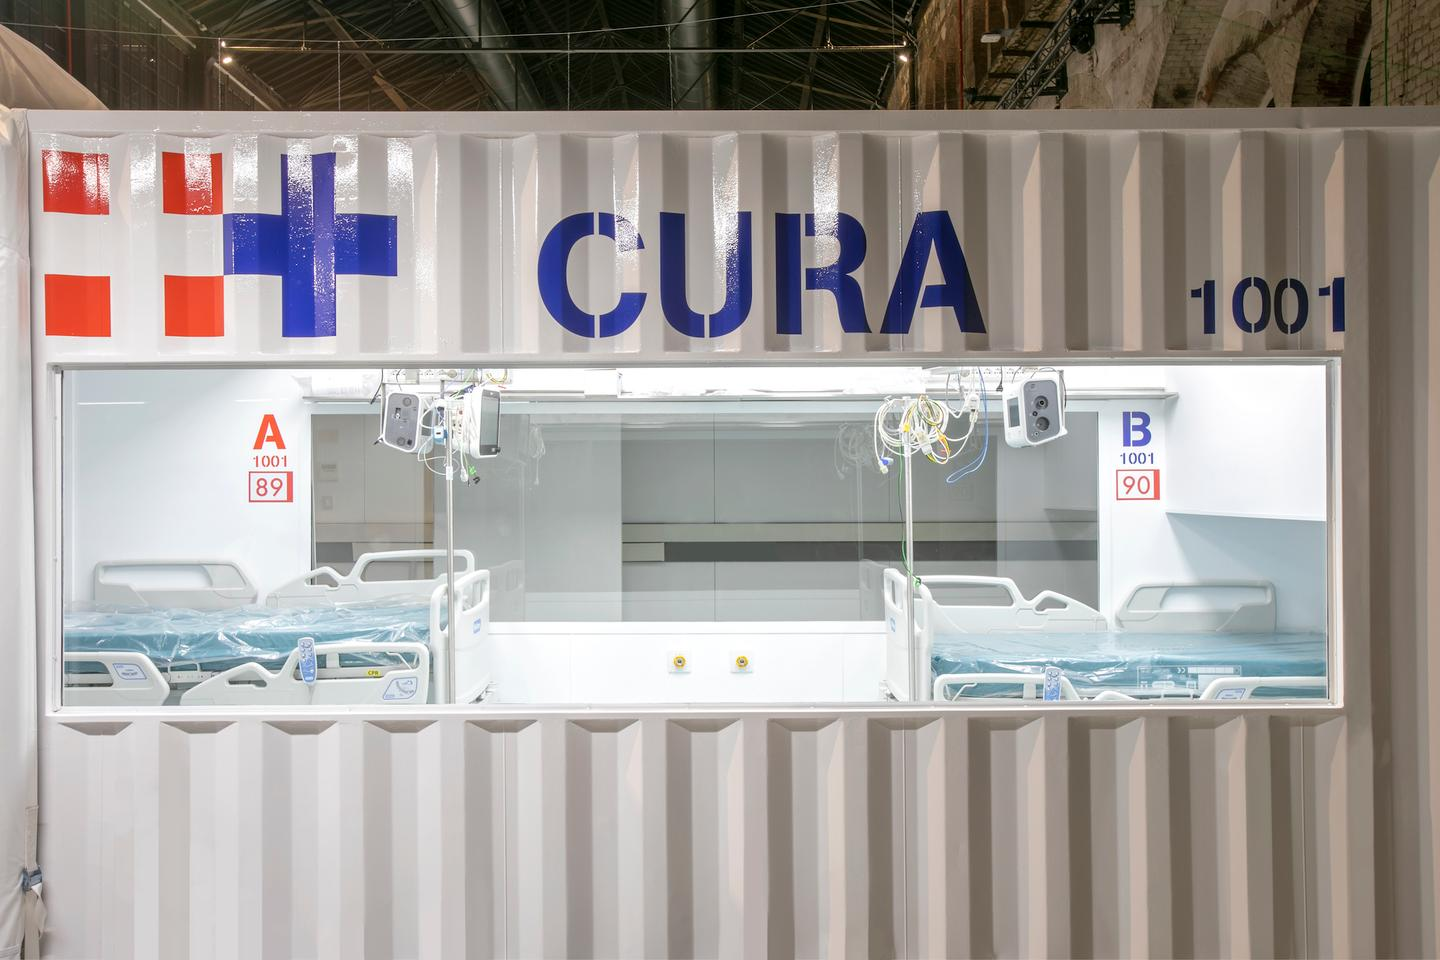 CURA is built from a standard container, so measures 20 ft (6.1 m) in length and is fitted with two glass windows